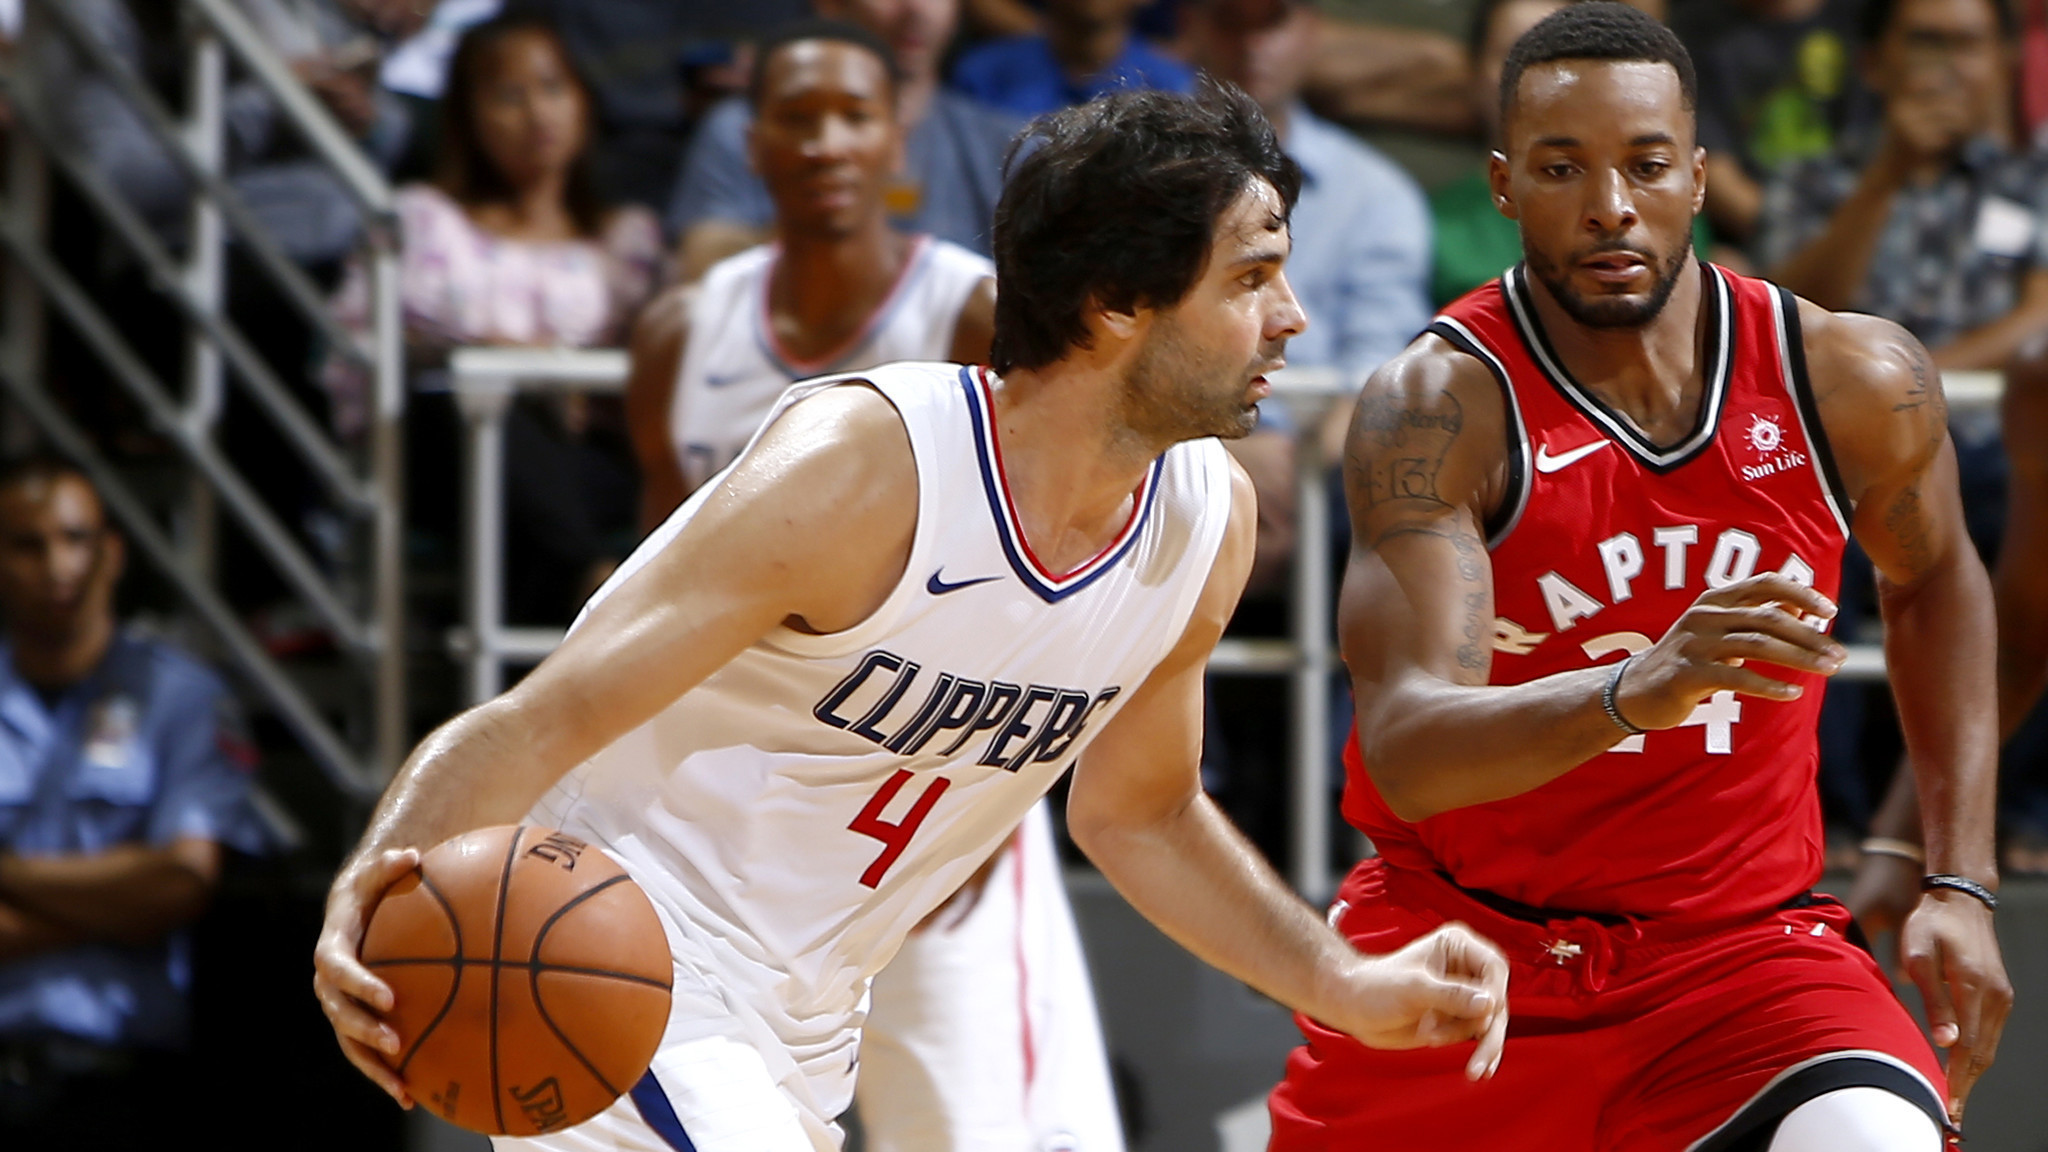 Milos Teodosic practices again with Clippers, but his return to games is uncertain